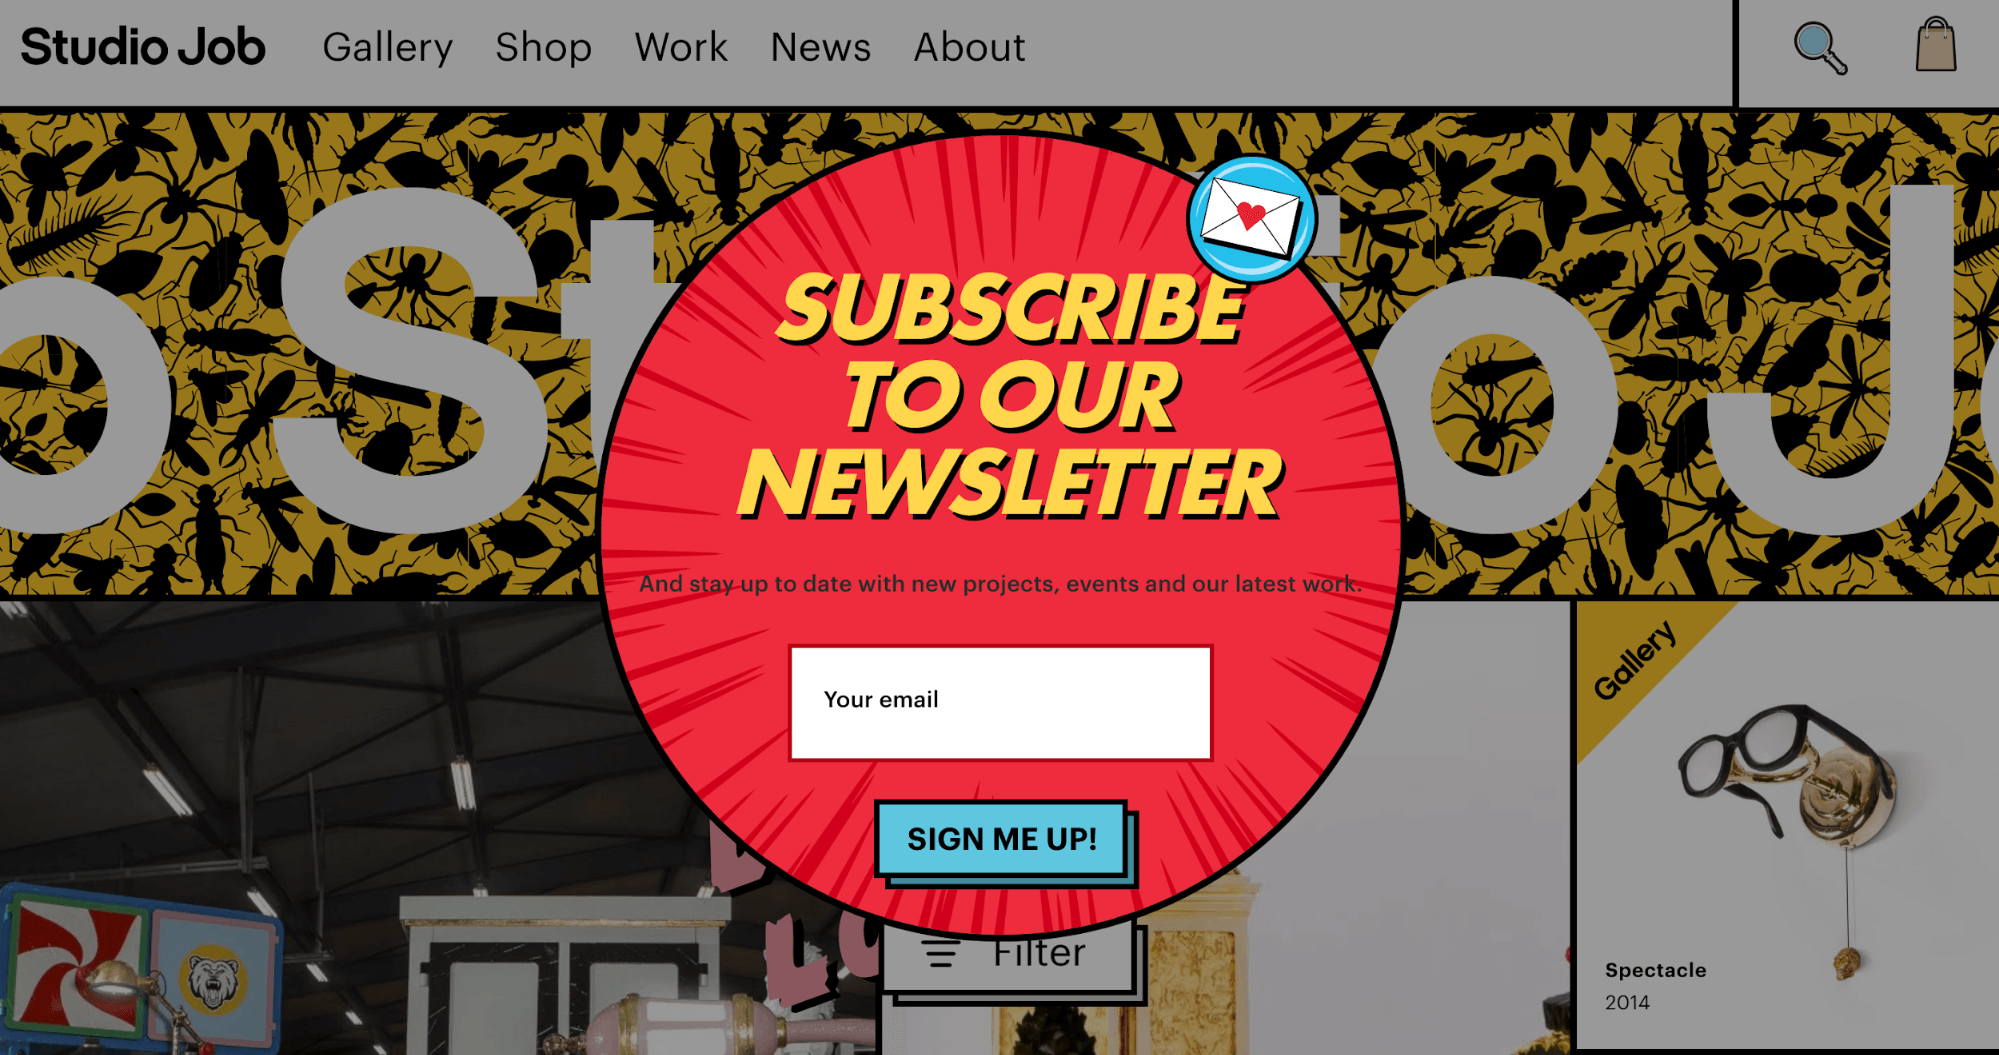 fun, quirky ecommerce website design with pop-up